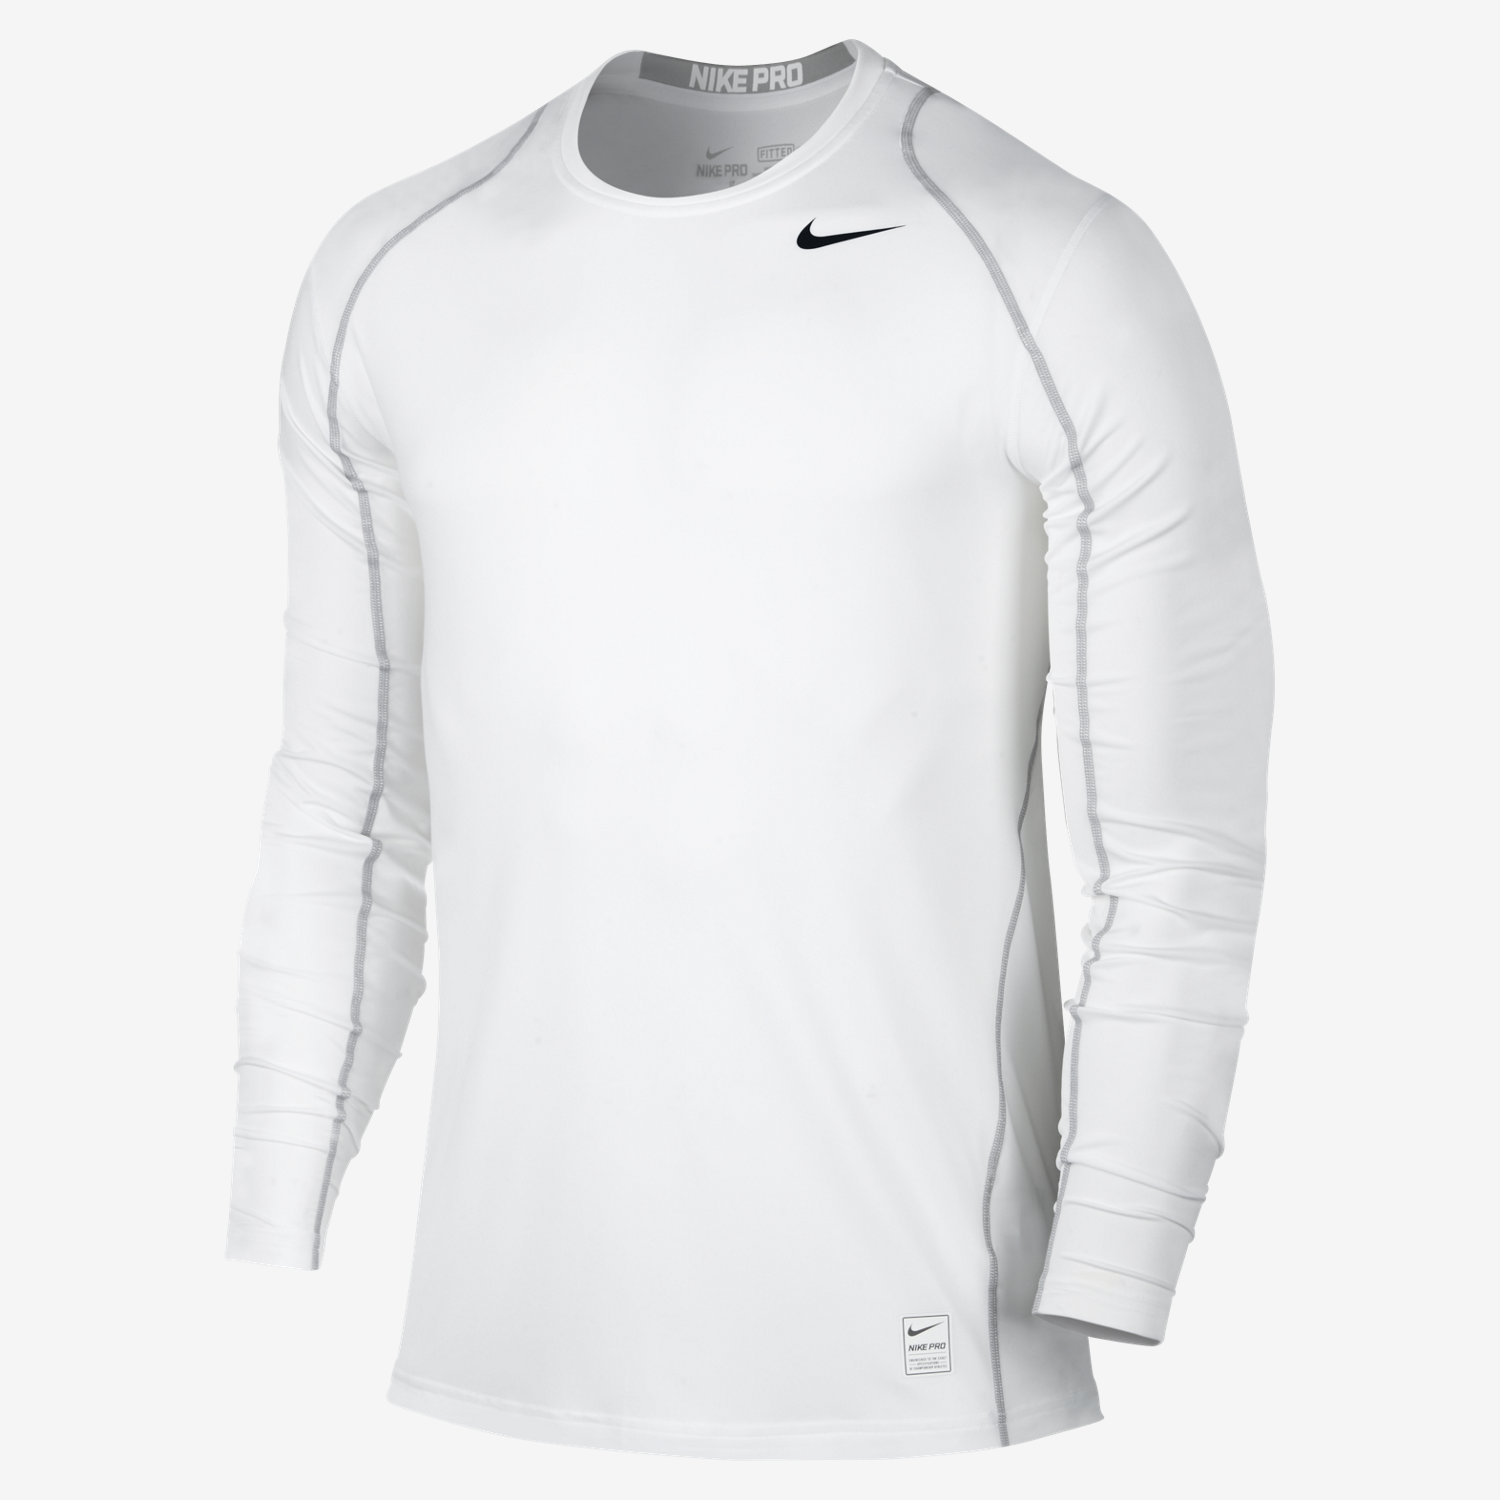 Áo Nike Pro Cool Fitted 703100 100